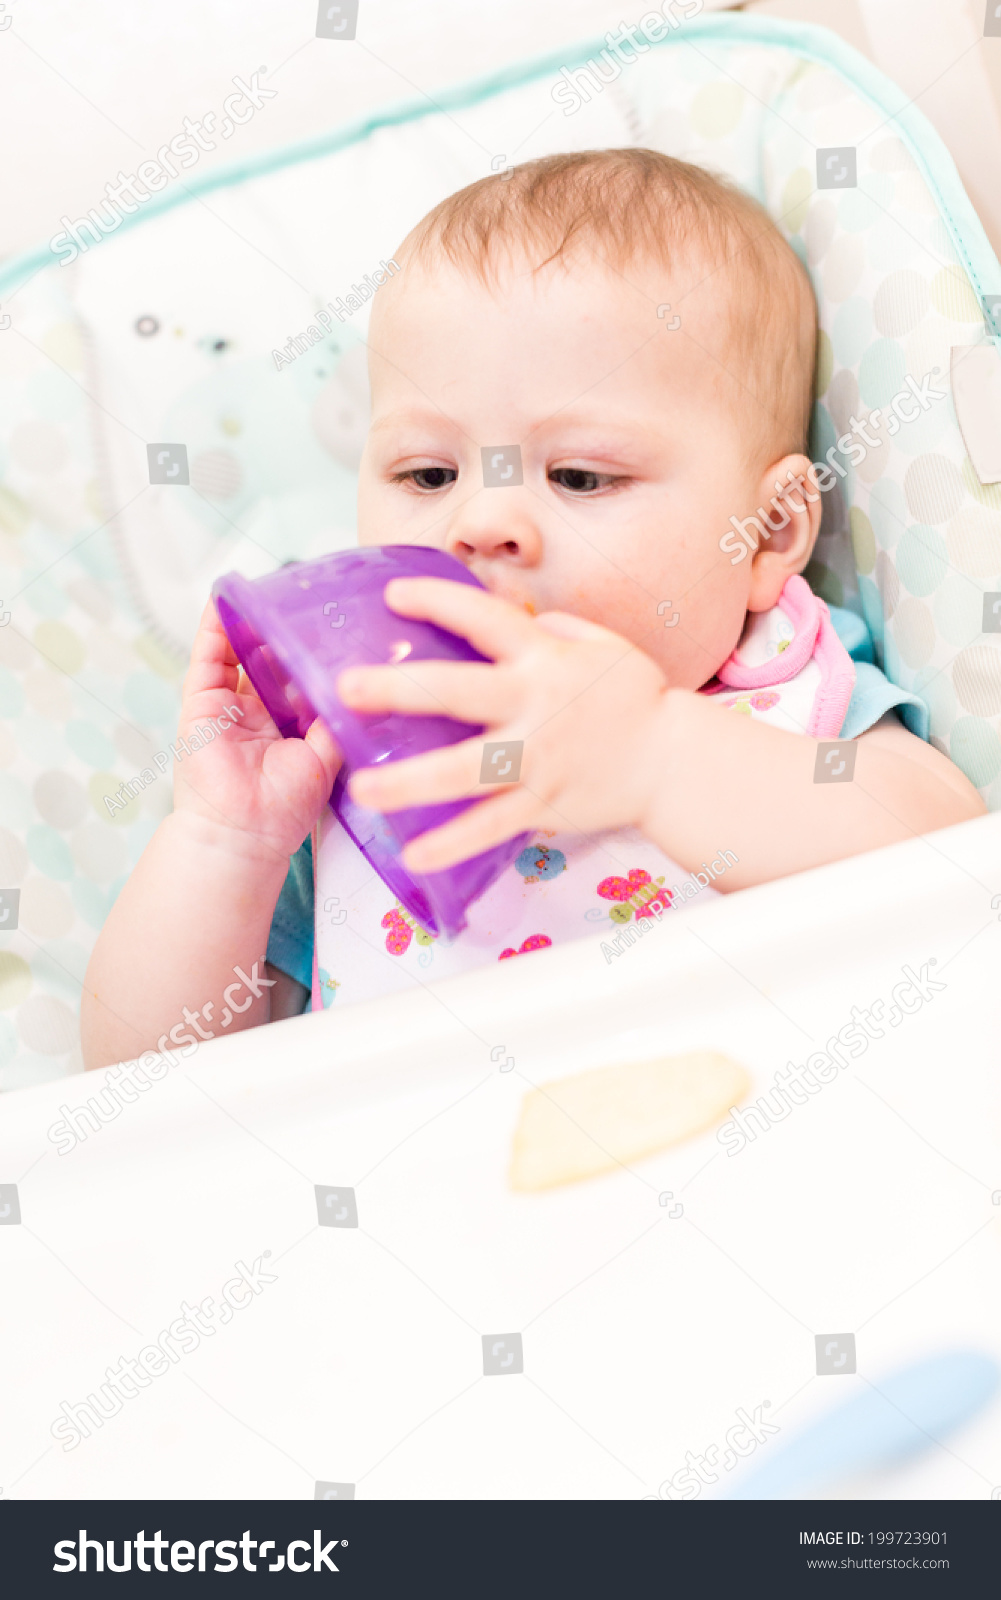 Baby Food Chair Little Girl Eating Baby Food High Stock Photo Edit Now 199723901